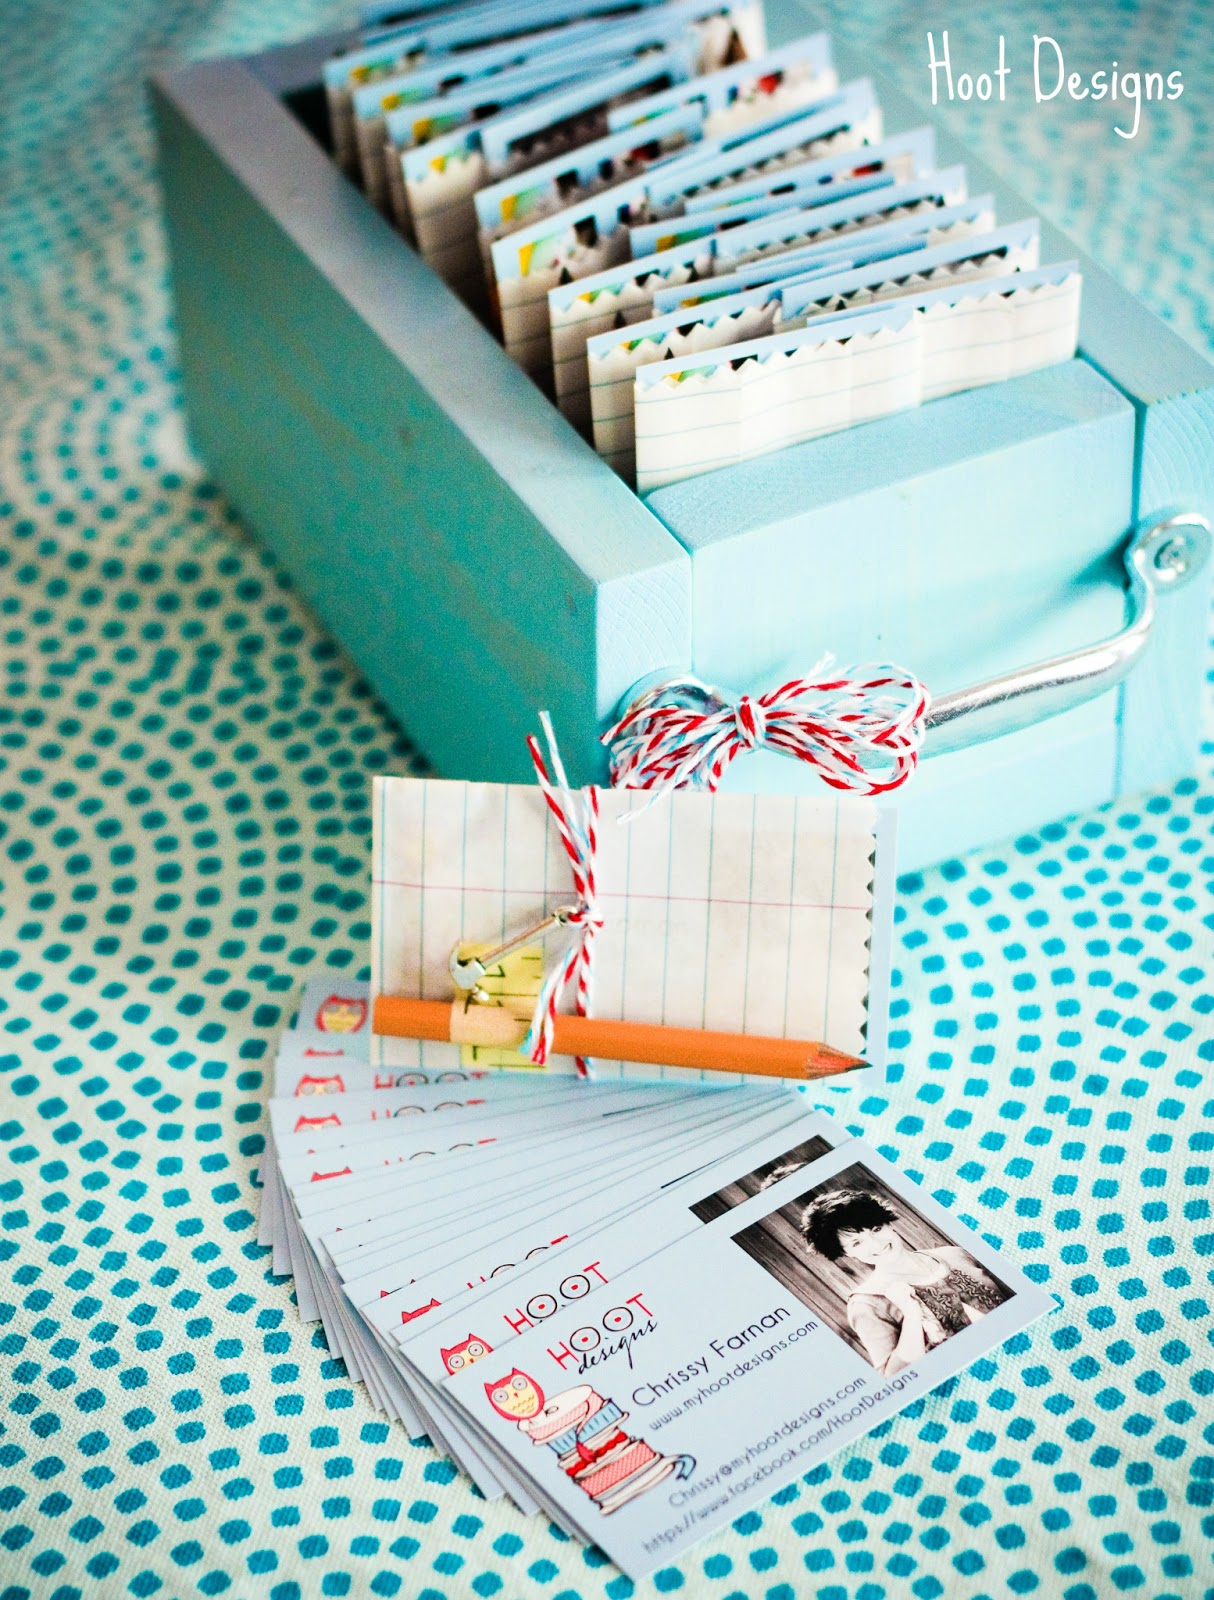 Hoot Designs Welcome Twig Amp Twine Designs